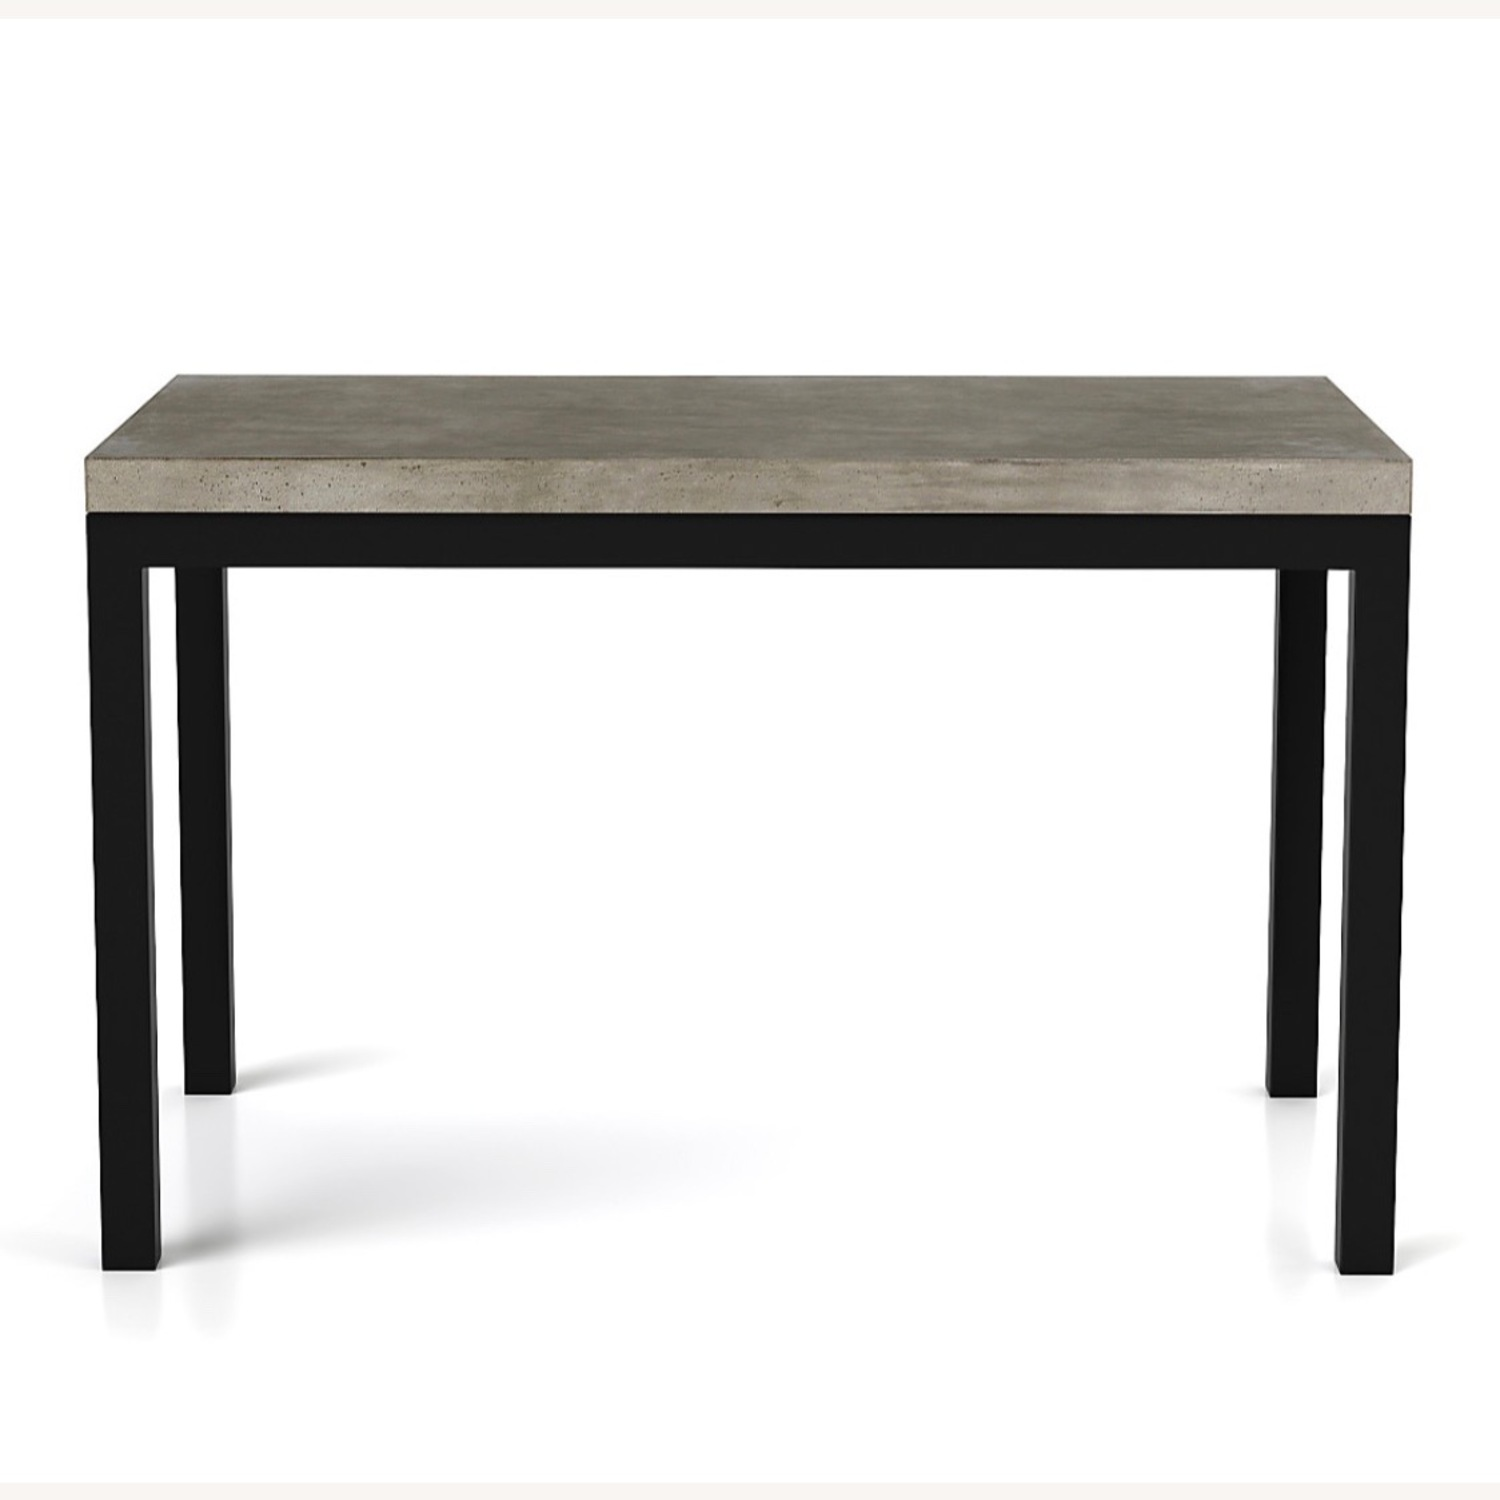 Crate & Barrel Concrete High Dining Table - image-18